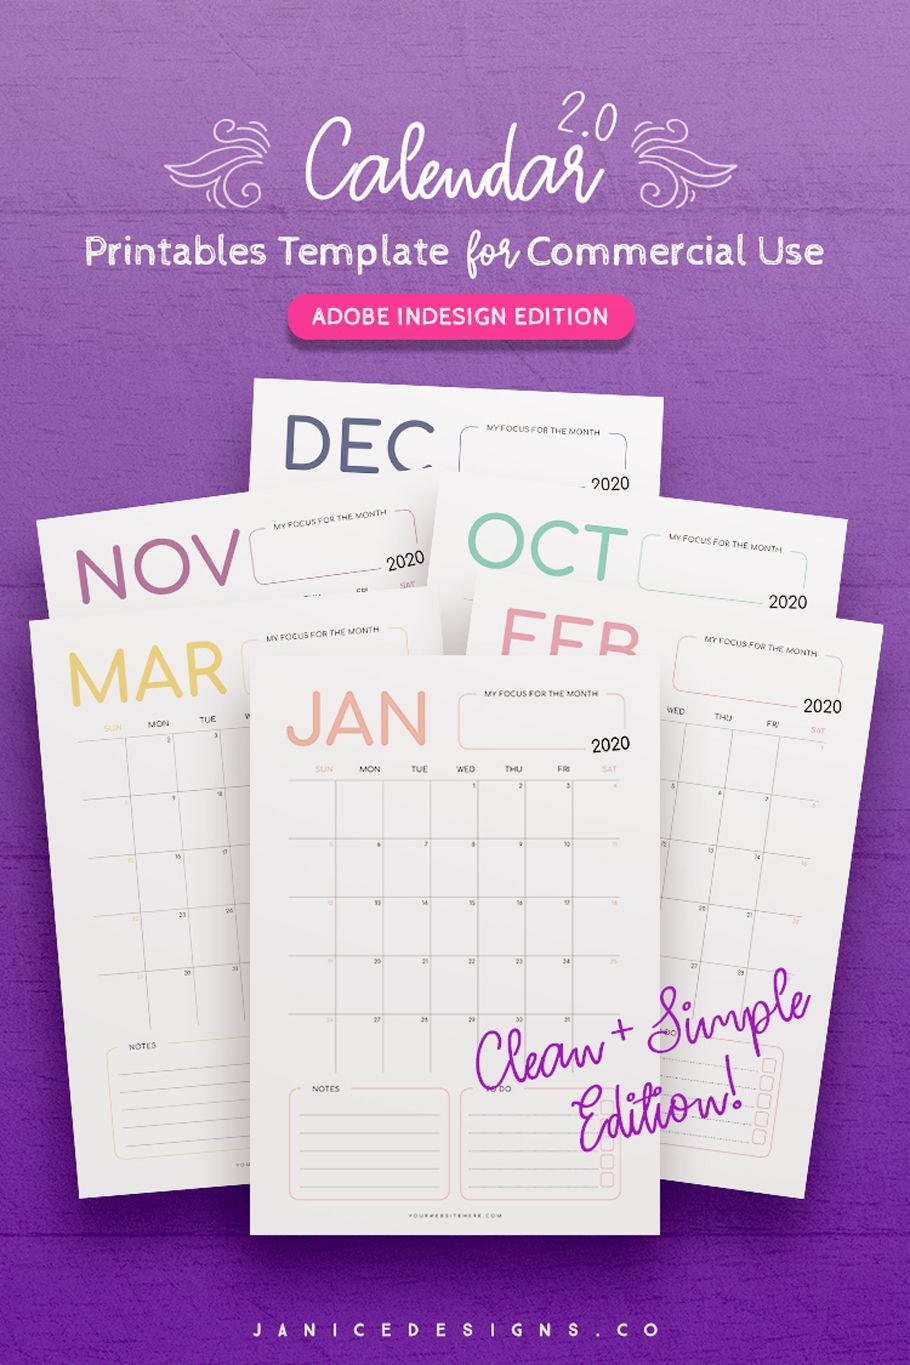 2020 Calendar InDesign Template for Commercial Use in 2020